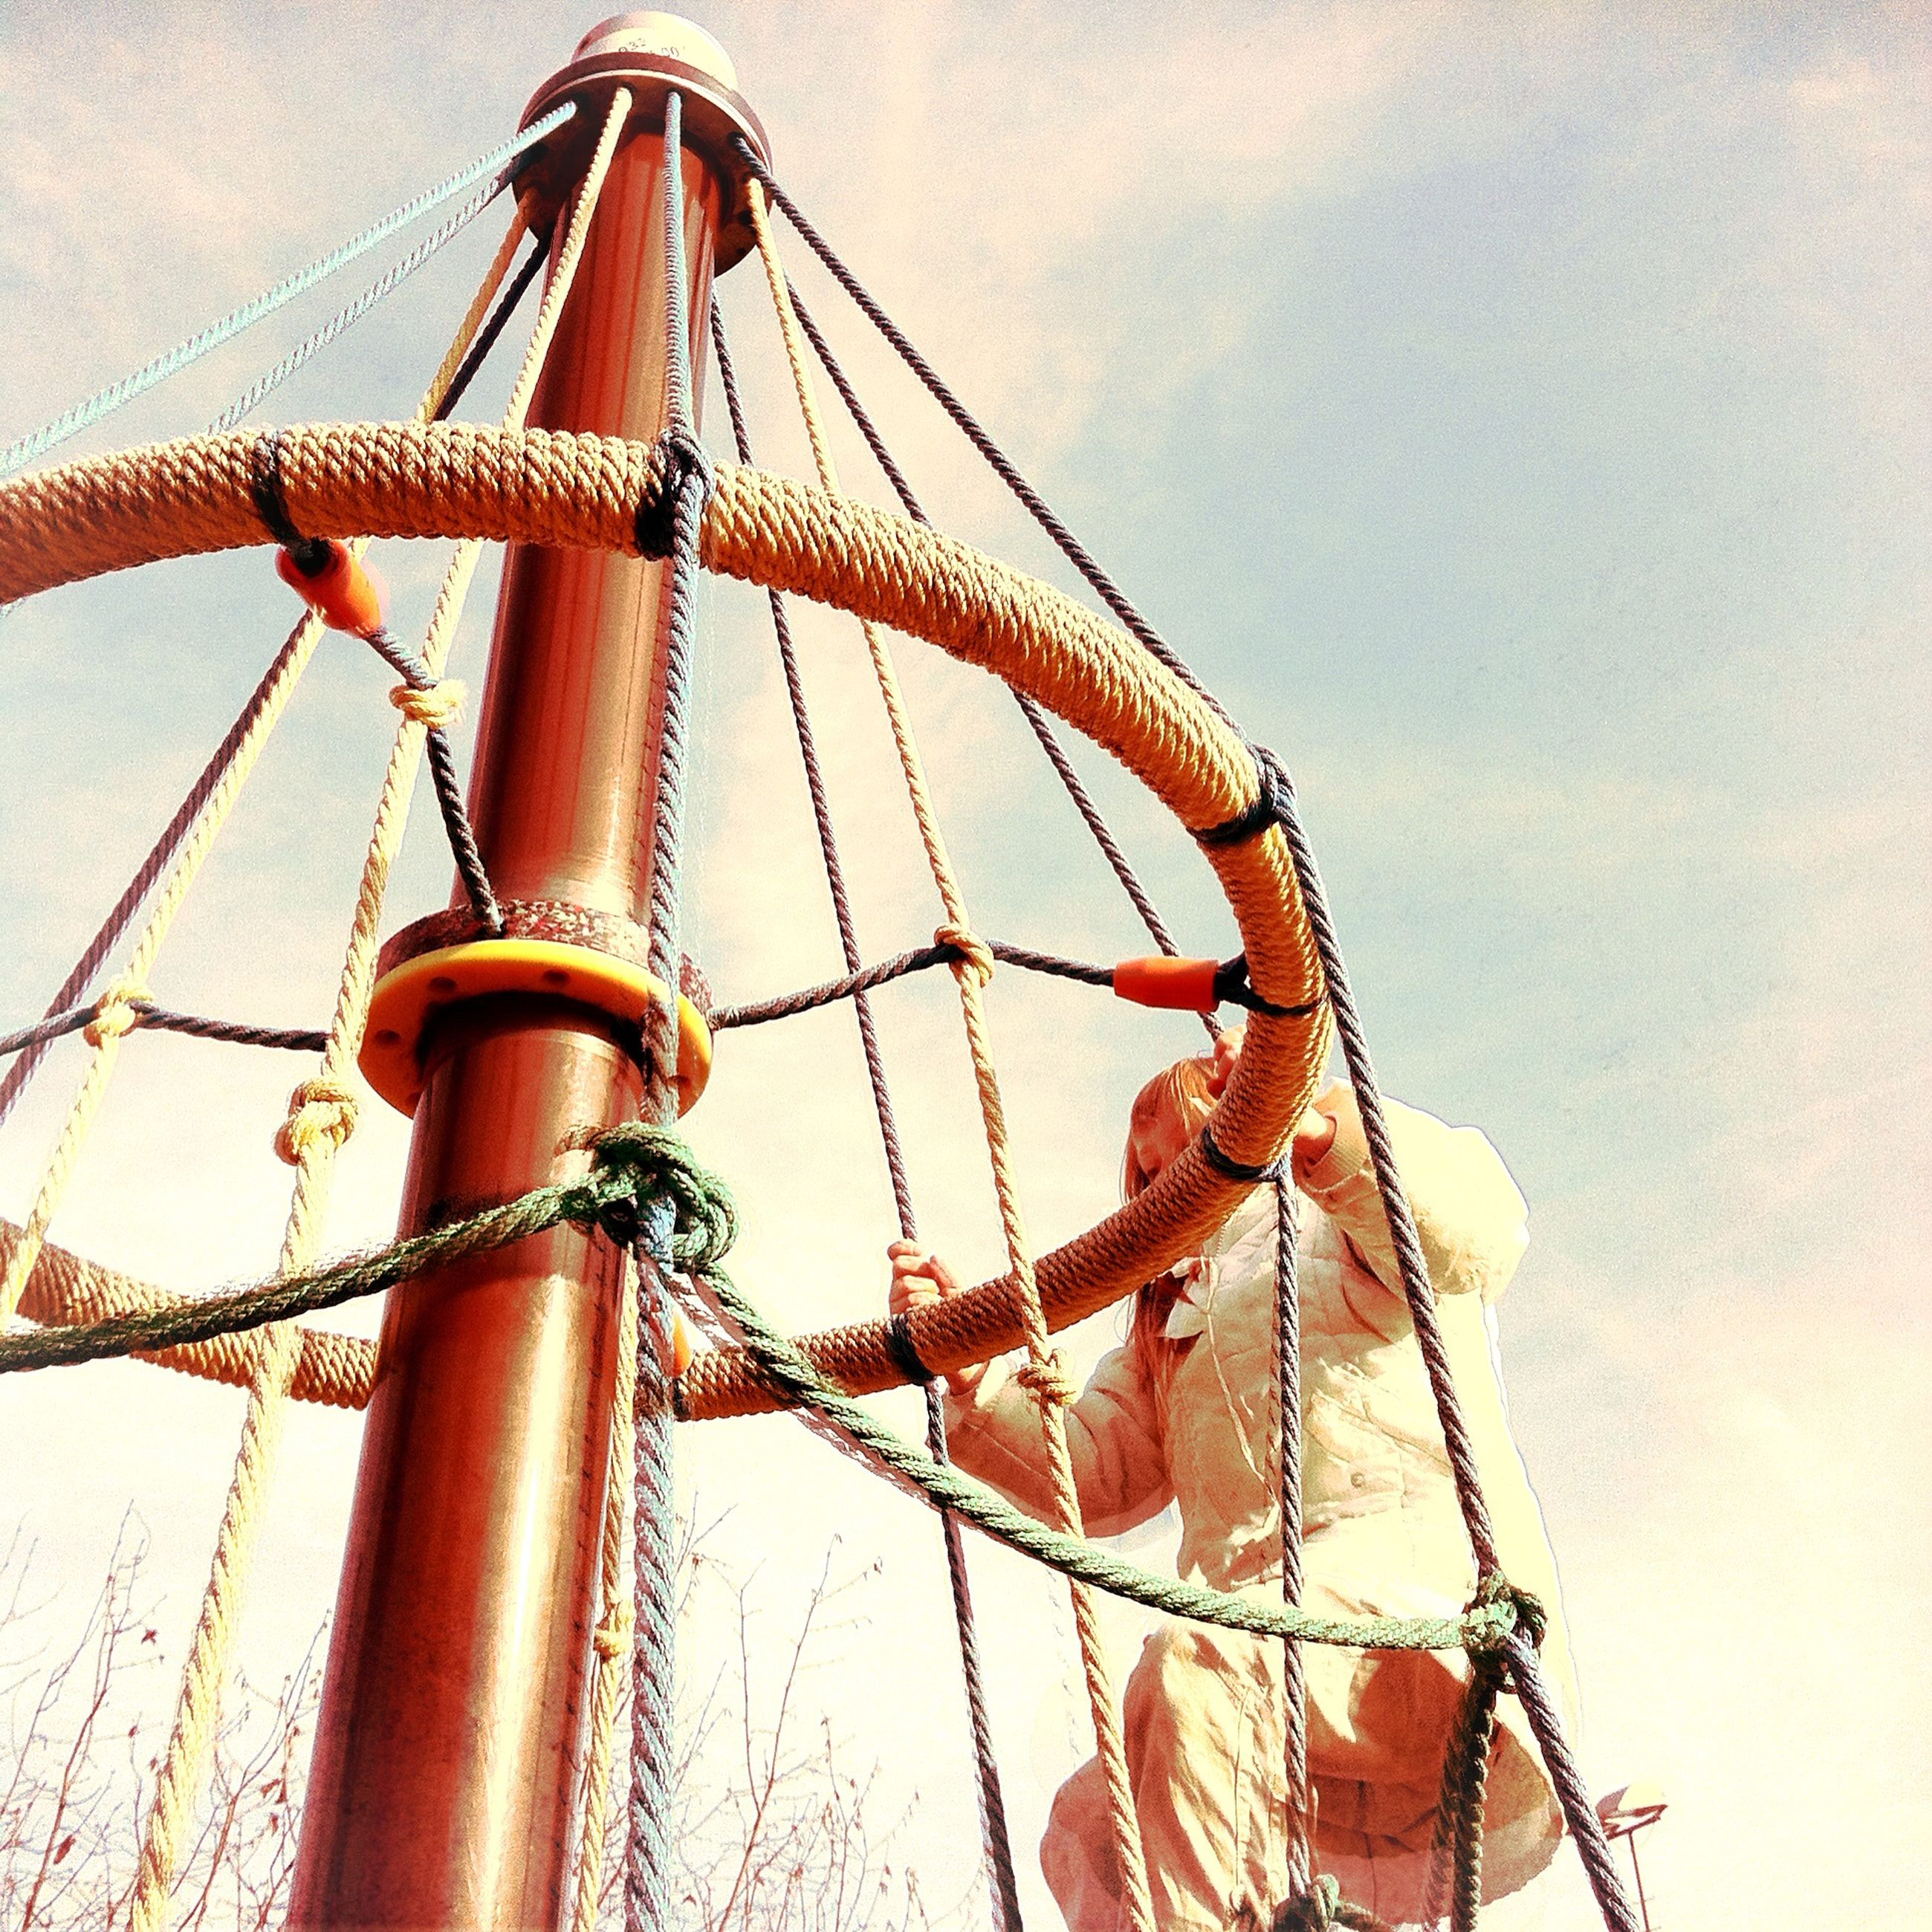 low angle view, sky, arts culture and entertainment, amusement park, metal, amusement park ride, rope, red, metallic, ferris wheel, outdoors, day, built structure, part of, nautical vessel, no people, protection, development, architecture, mast